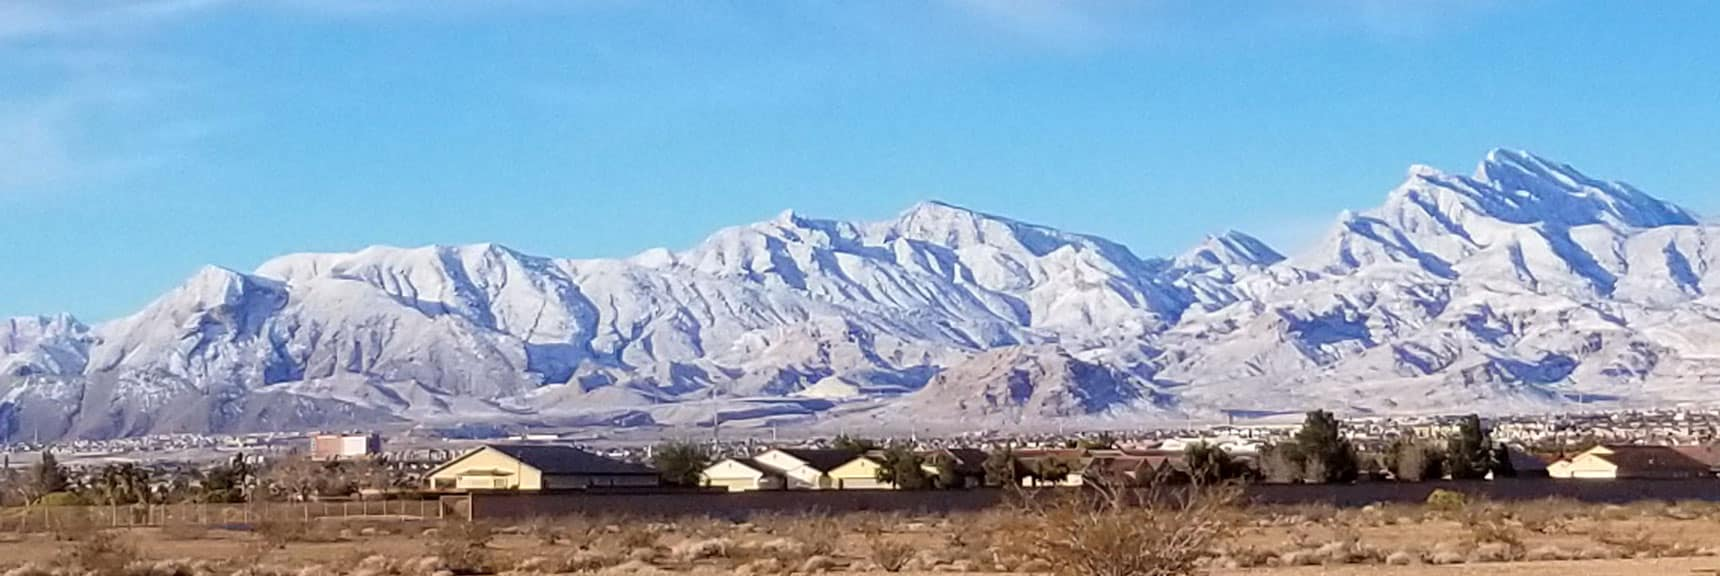 Damsel Peak Viewed from Centennial Hills in Las Vegas, Nevada